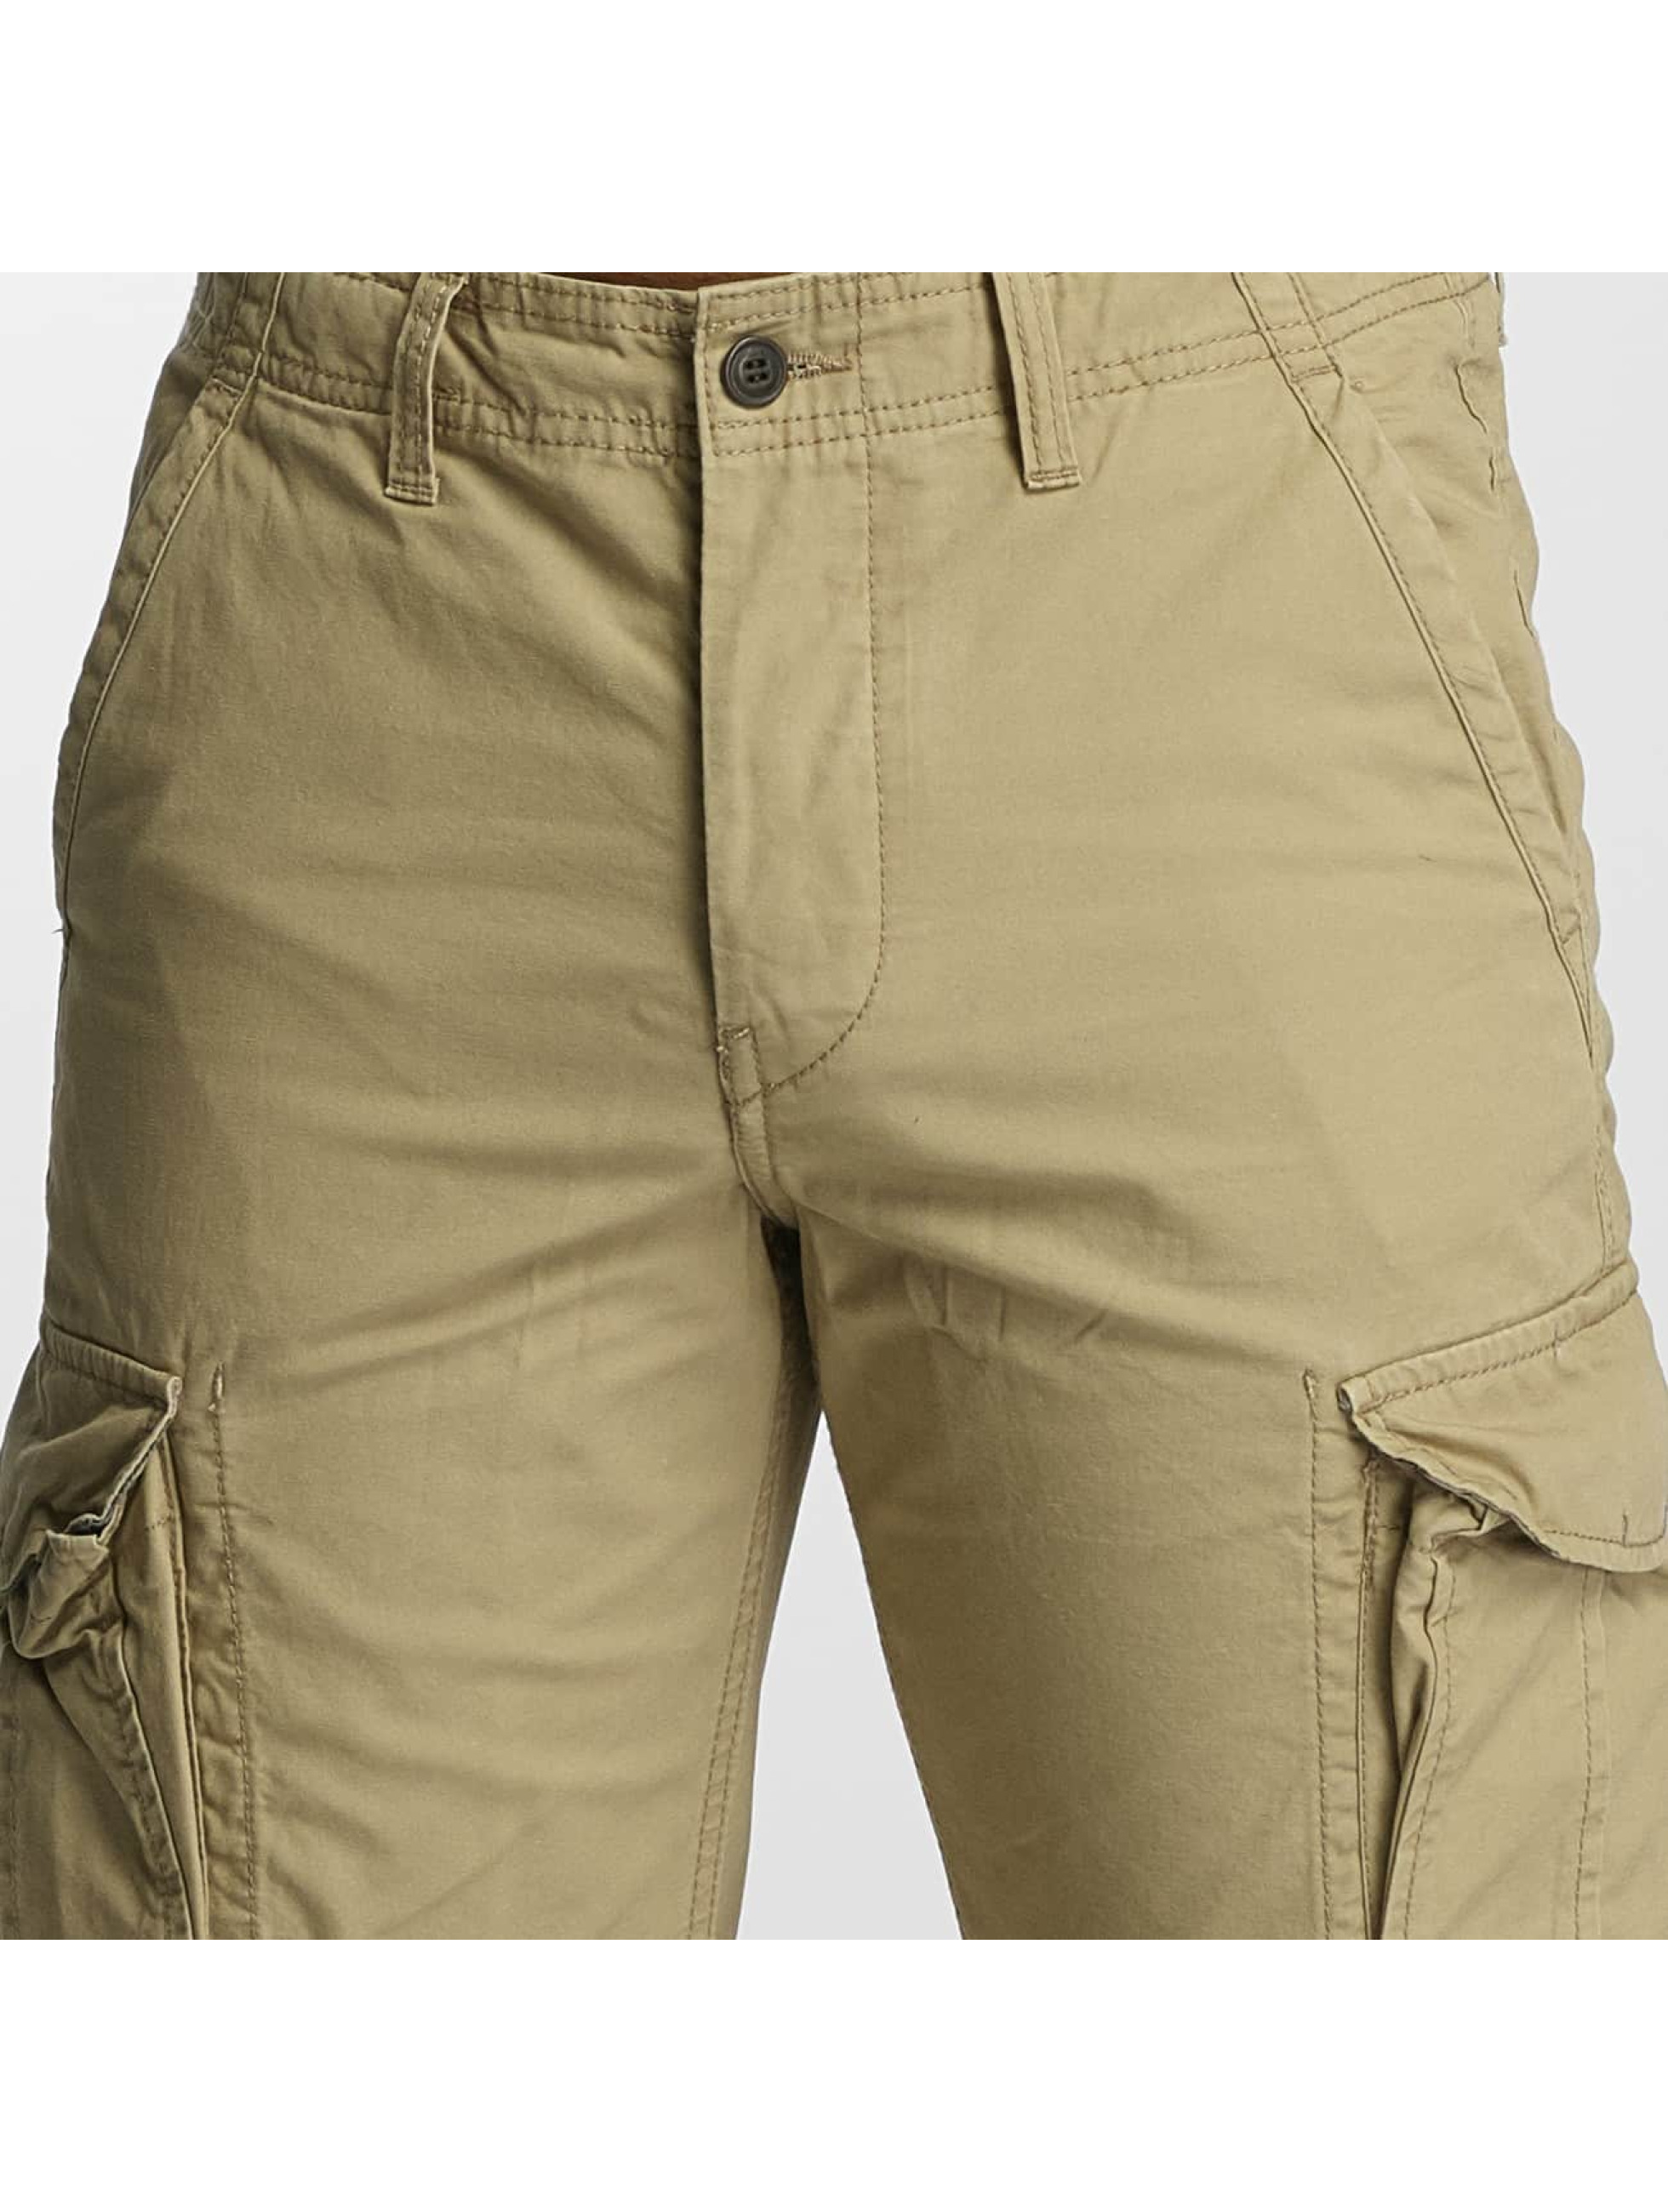 Jack & Jones Shorts jjiPreston beige